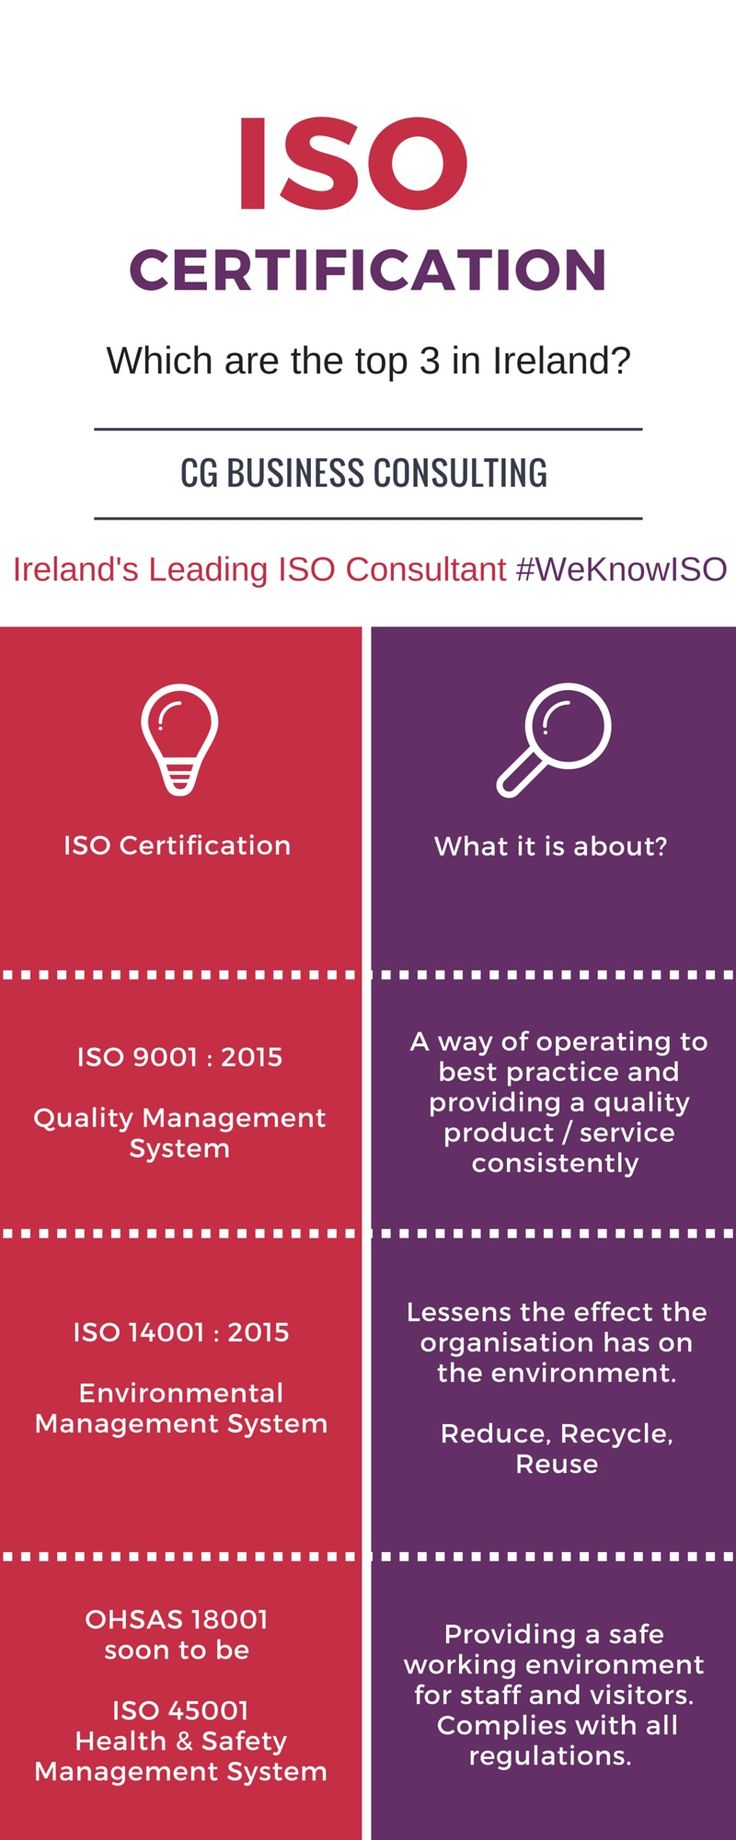 ISO 9001:2015, ISO 14001:2015 & OHSAS 18001 (Soon to be ISO 45001) are the 3…